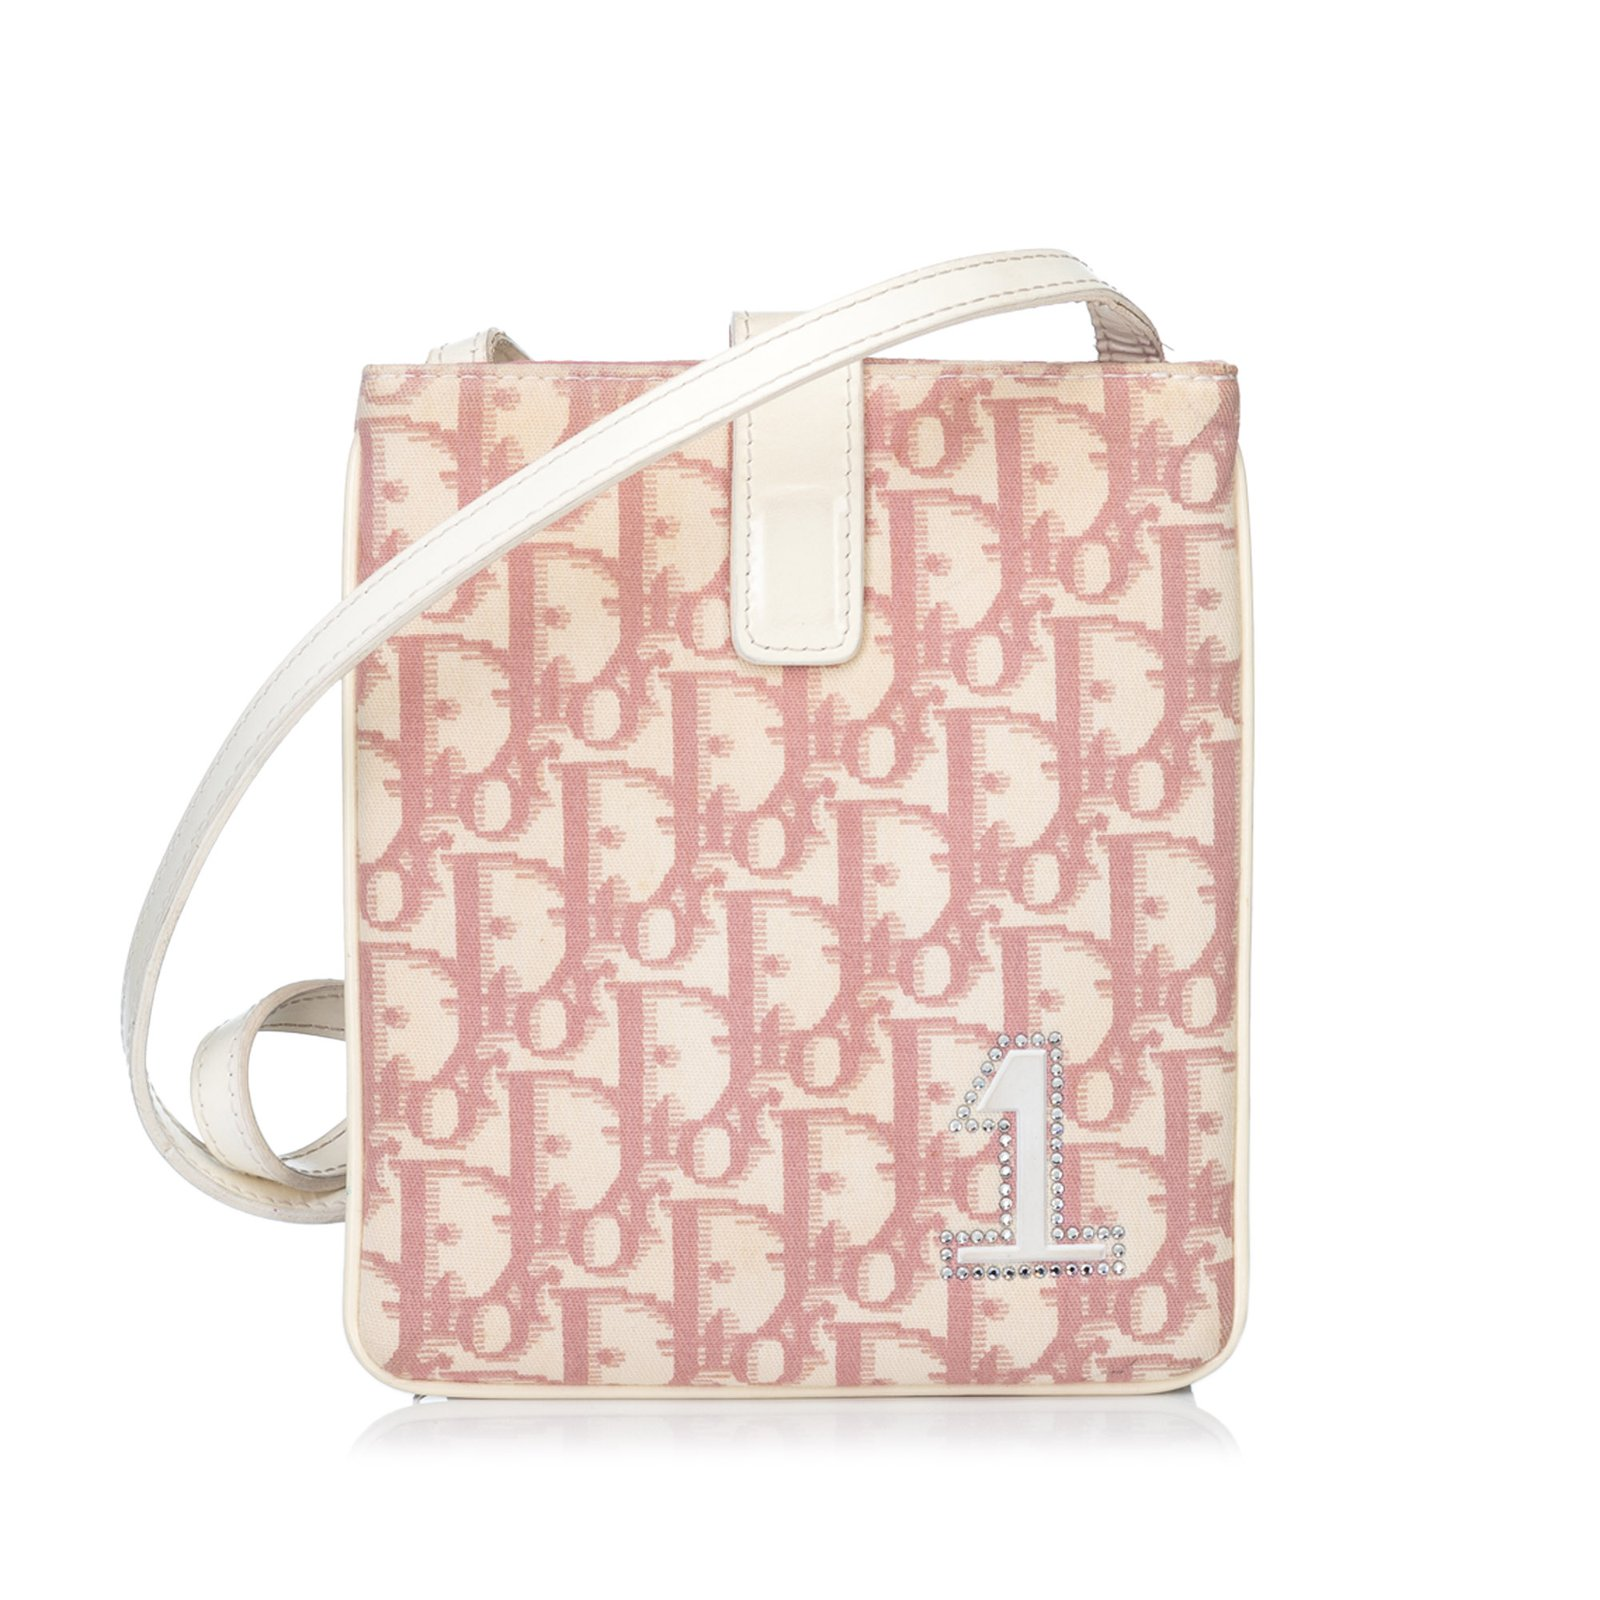 e82befb3a9 Dior Oblique Trotter Mini Crossbody Handbags Leather,Other,Plastic  Pink,White,Cream